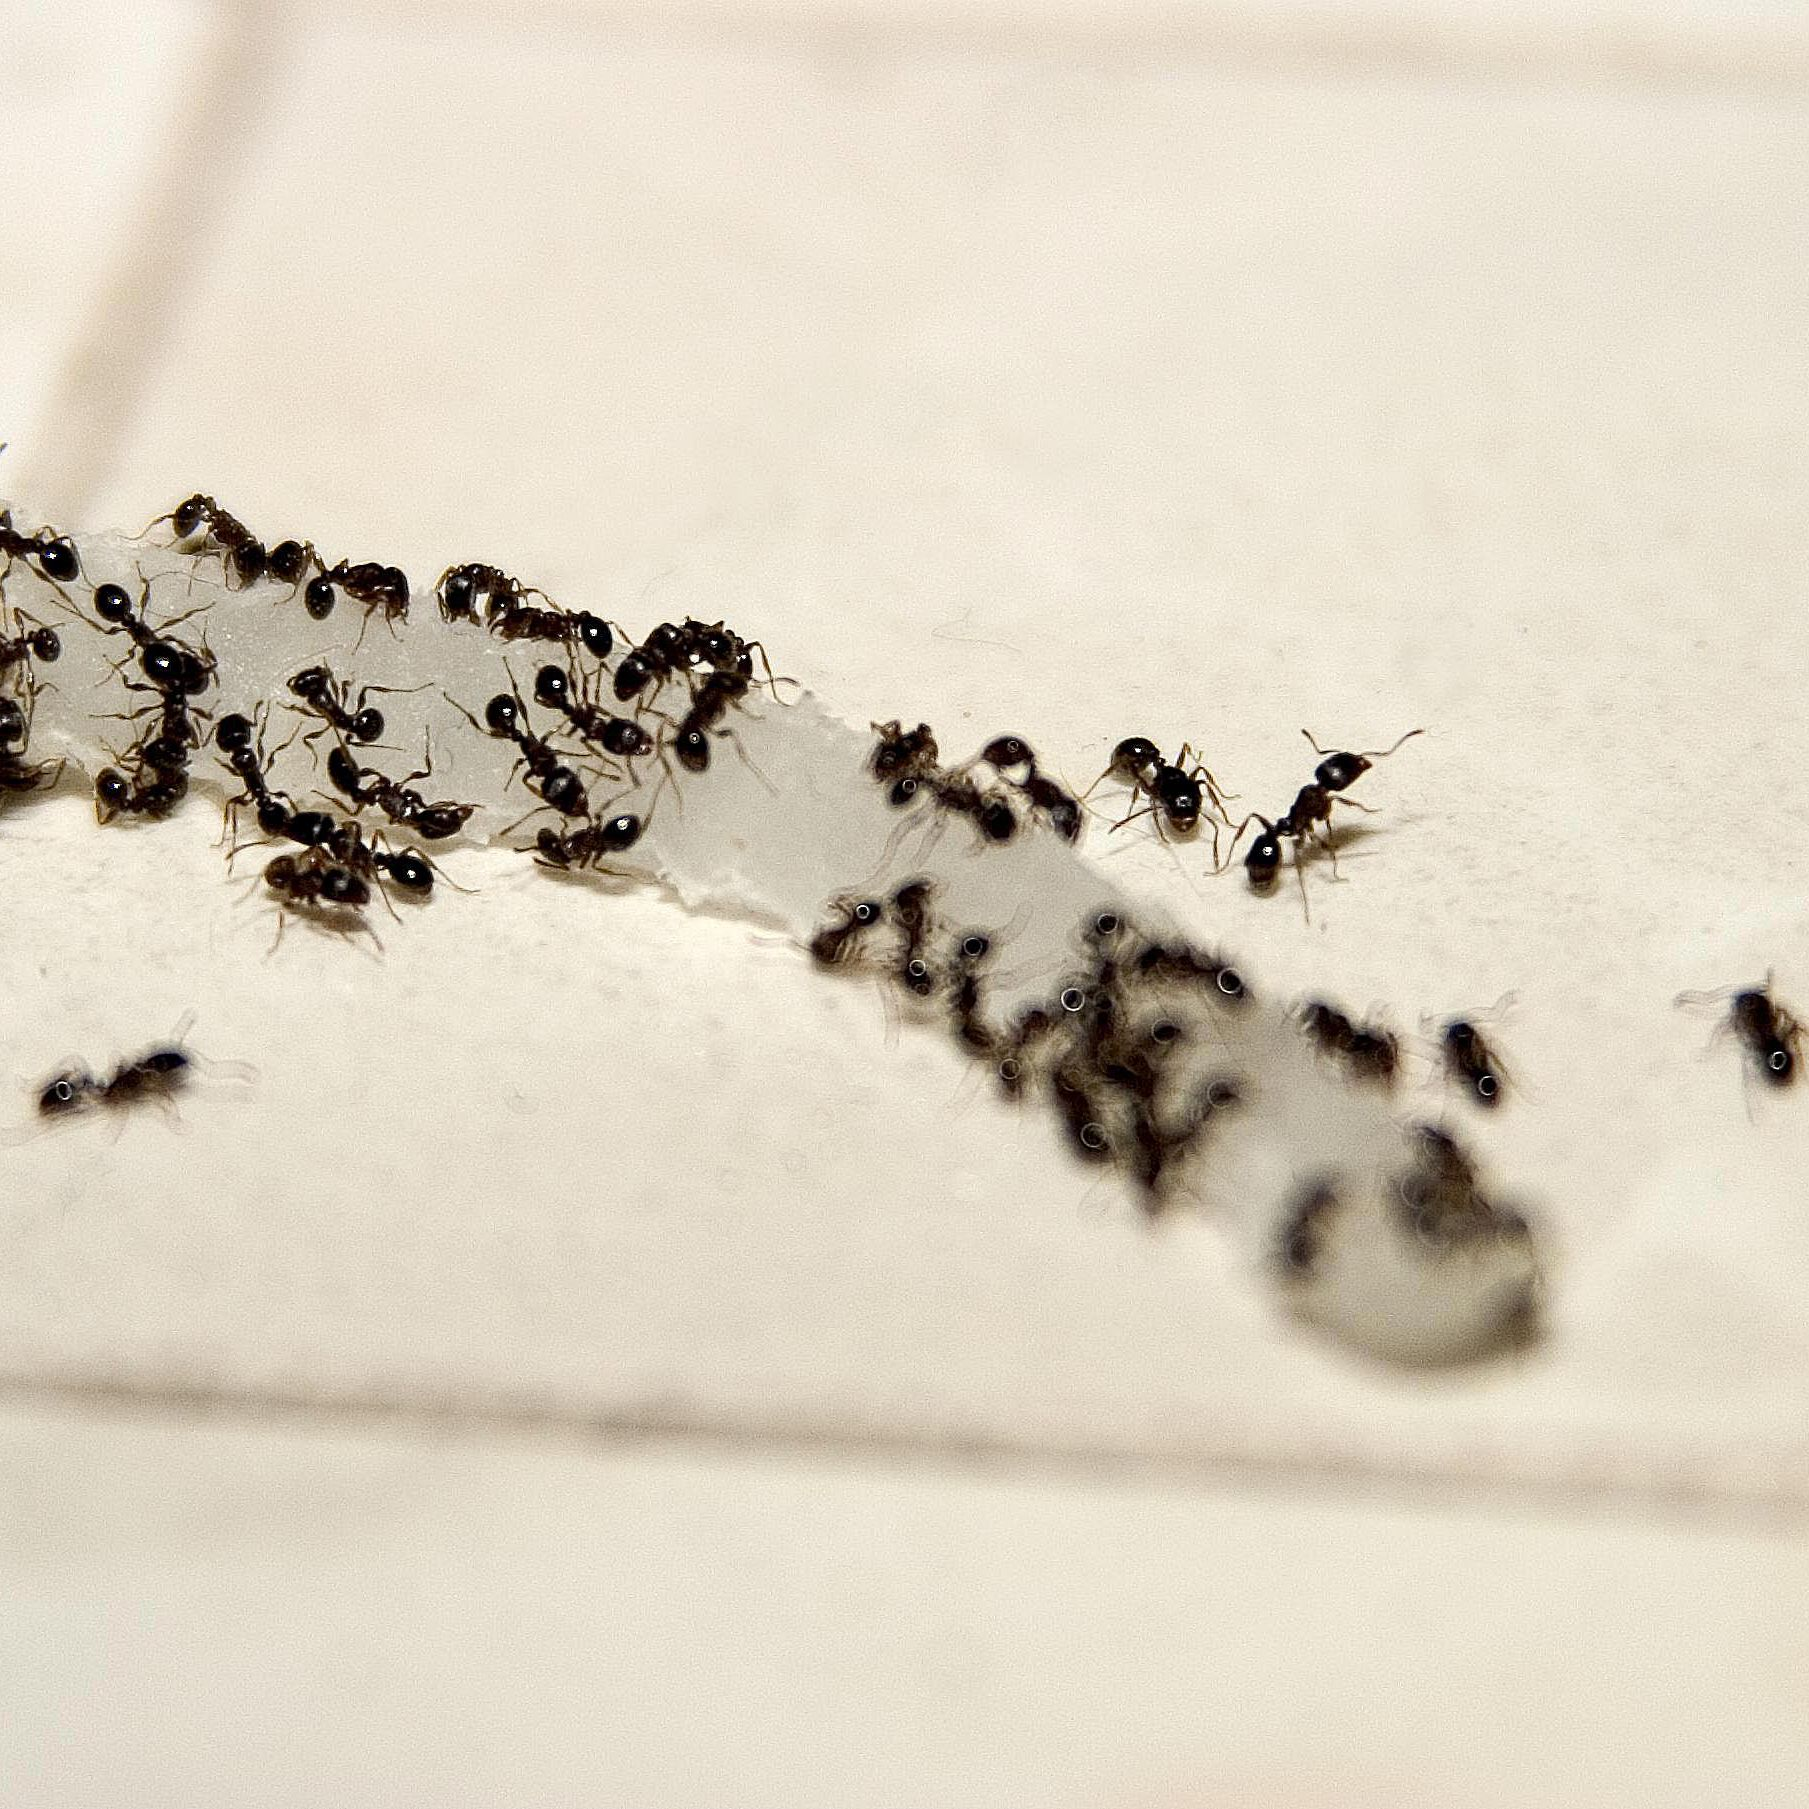 Ants In Bathroom | How To Get Rid Of Stinky Odorous House Ants